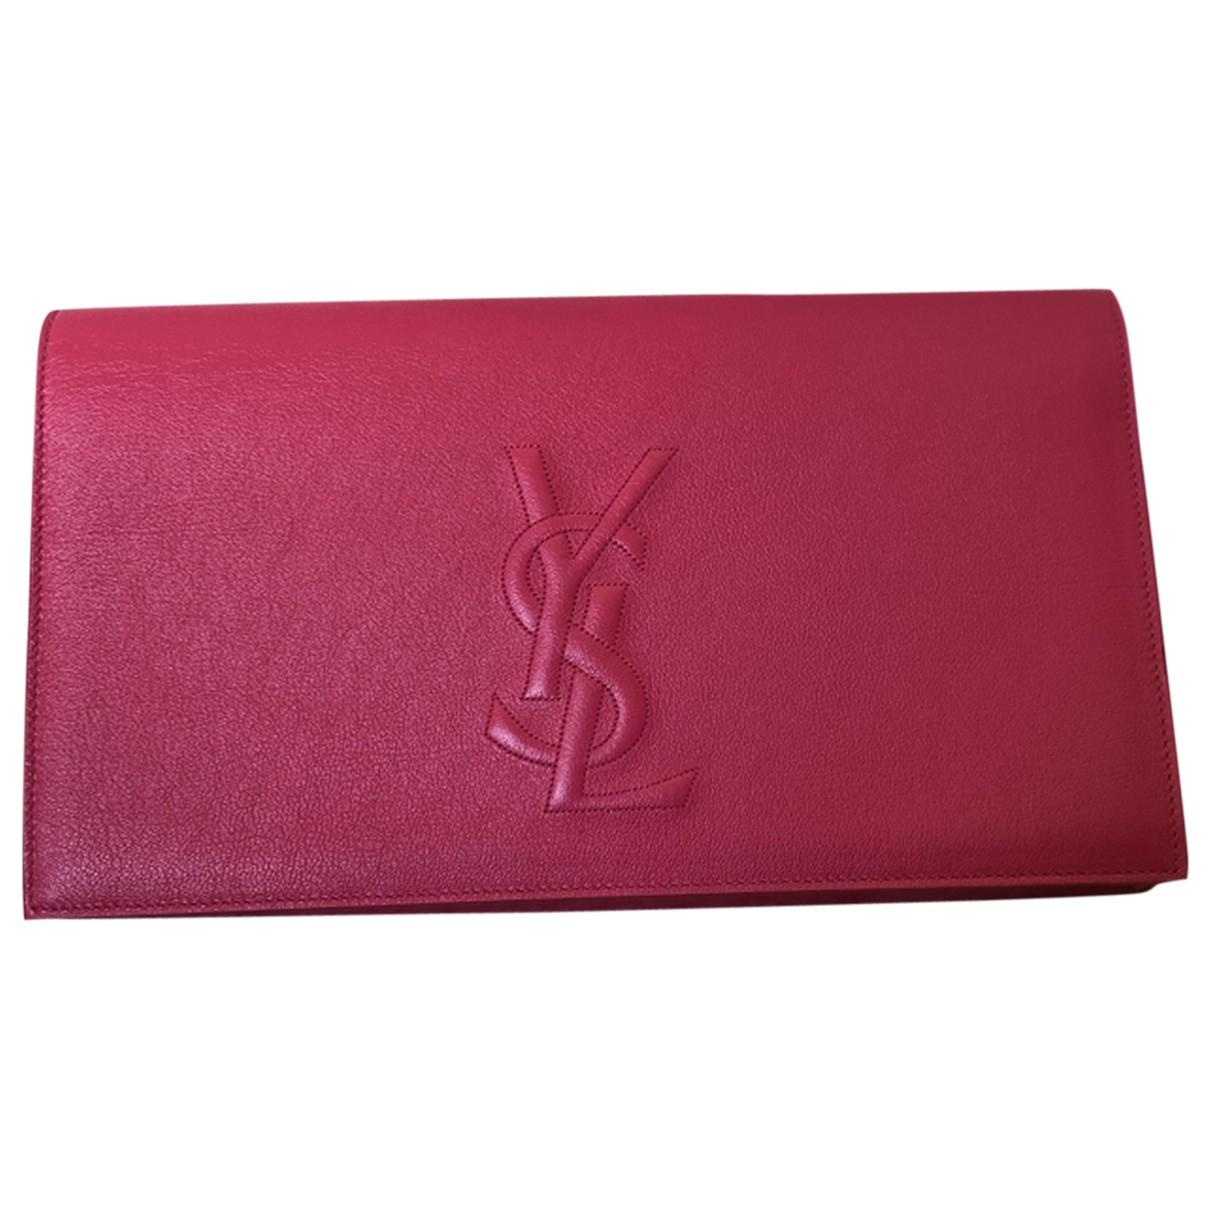 Saint Laurent Kate monogramme Pink Patent leather Clutch bag for Women N